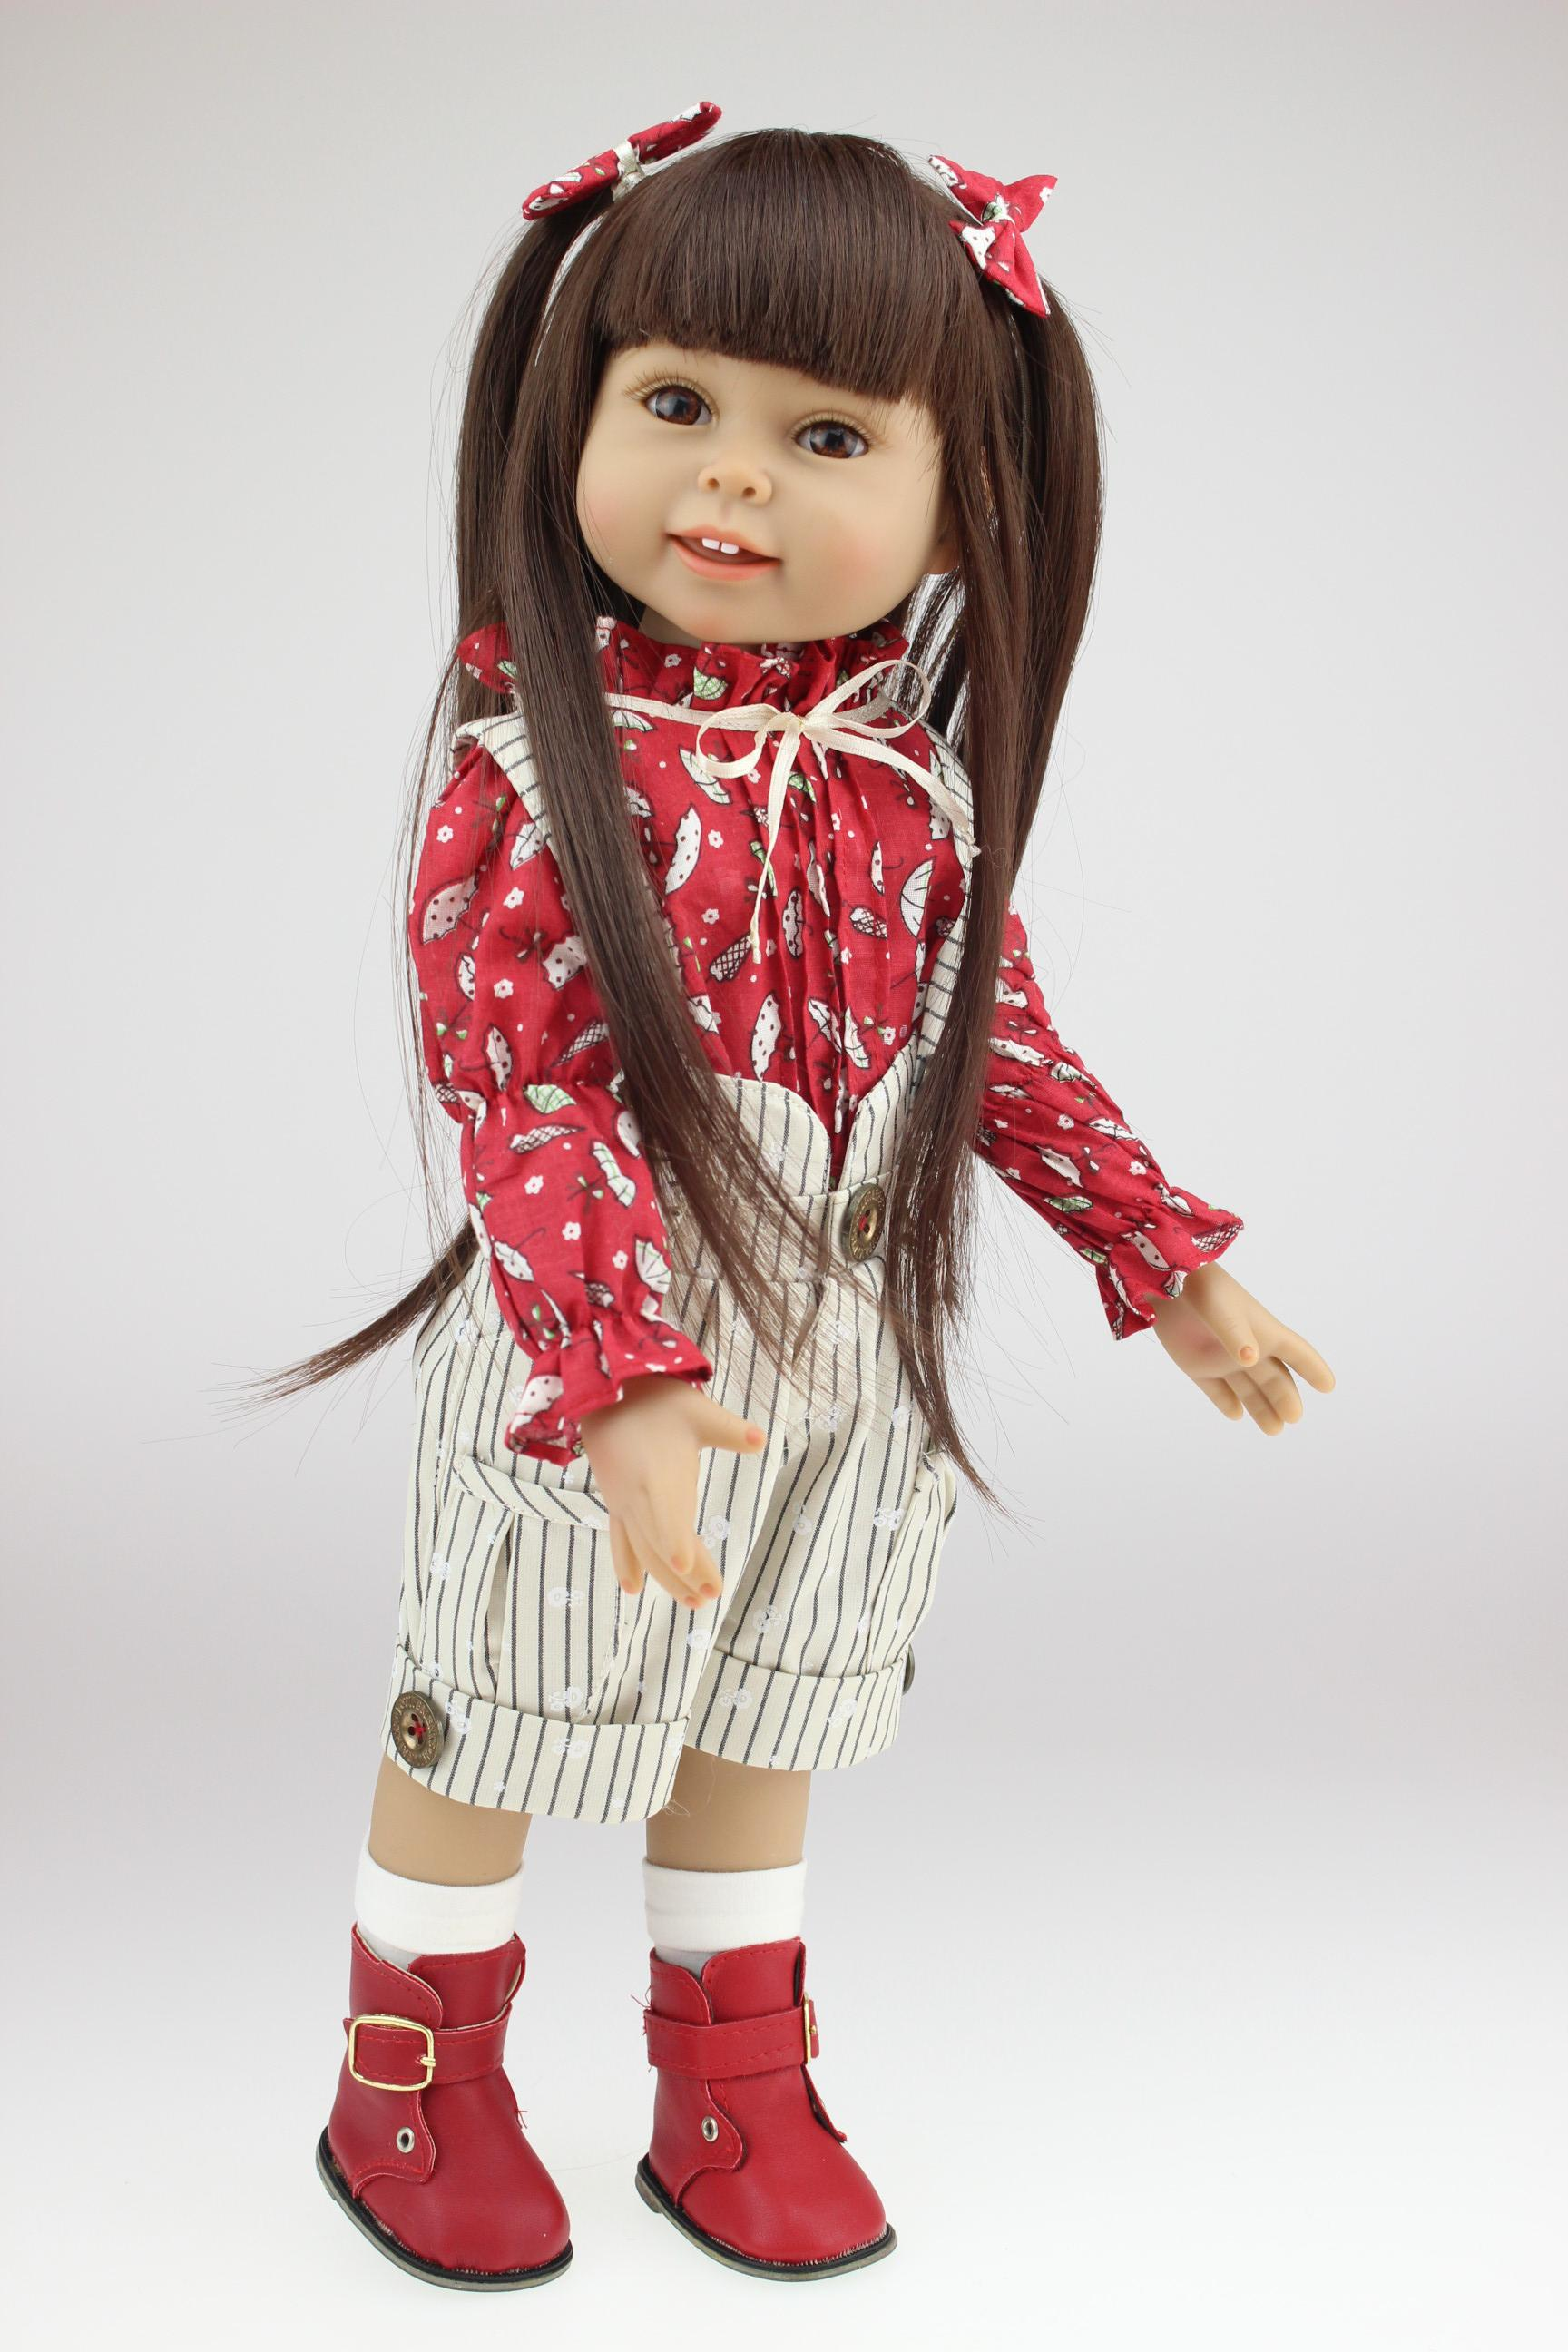 Girl Toys Doll : Inch full vinyl american girl doll realistic little